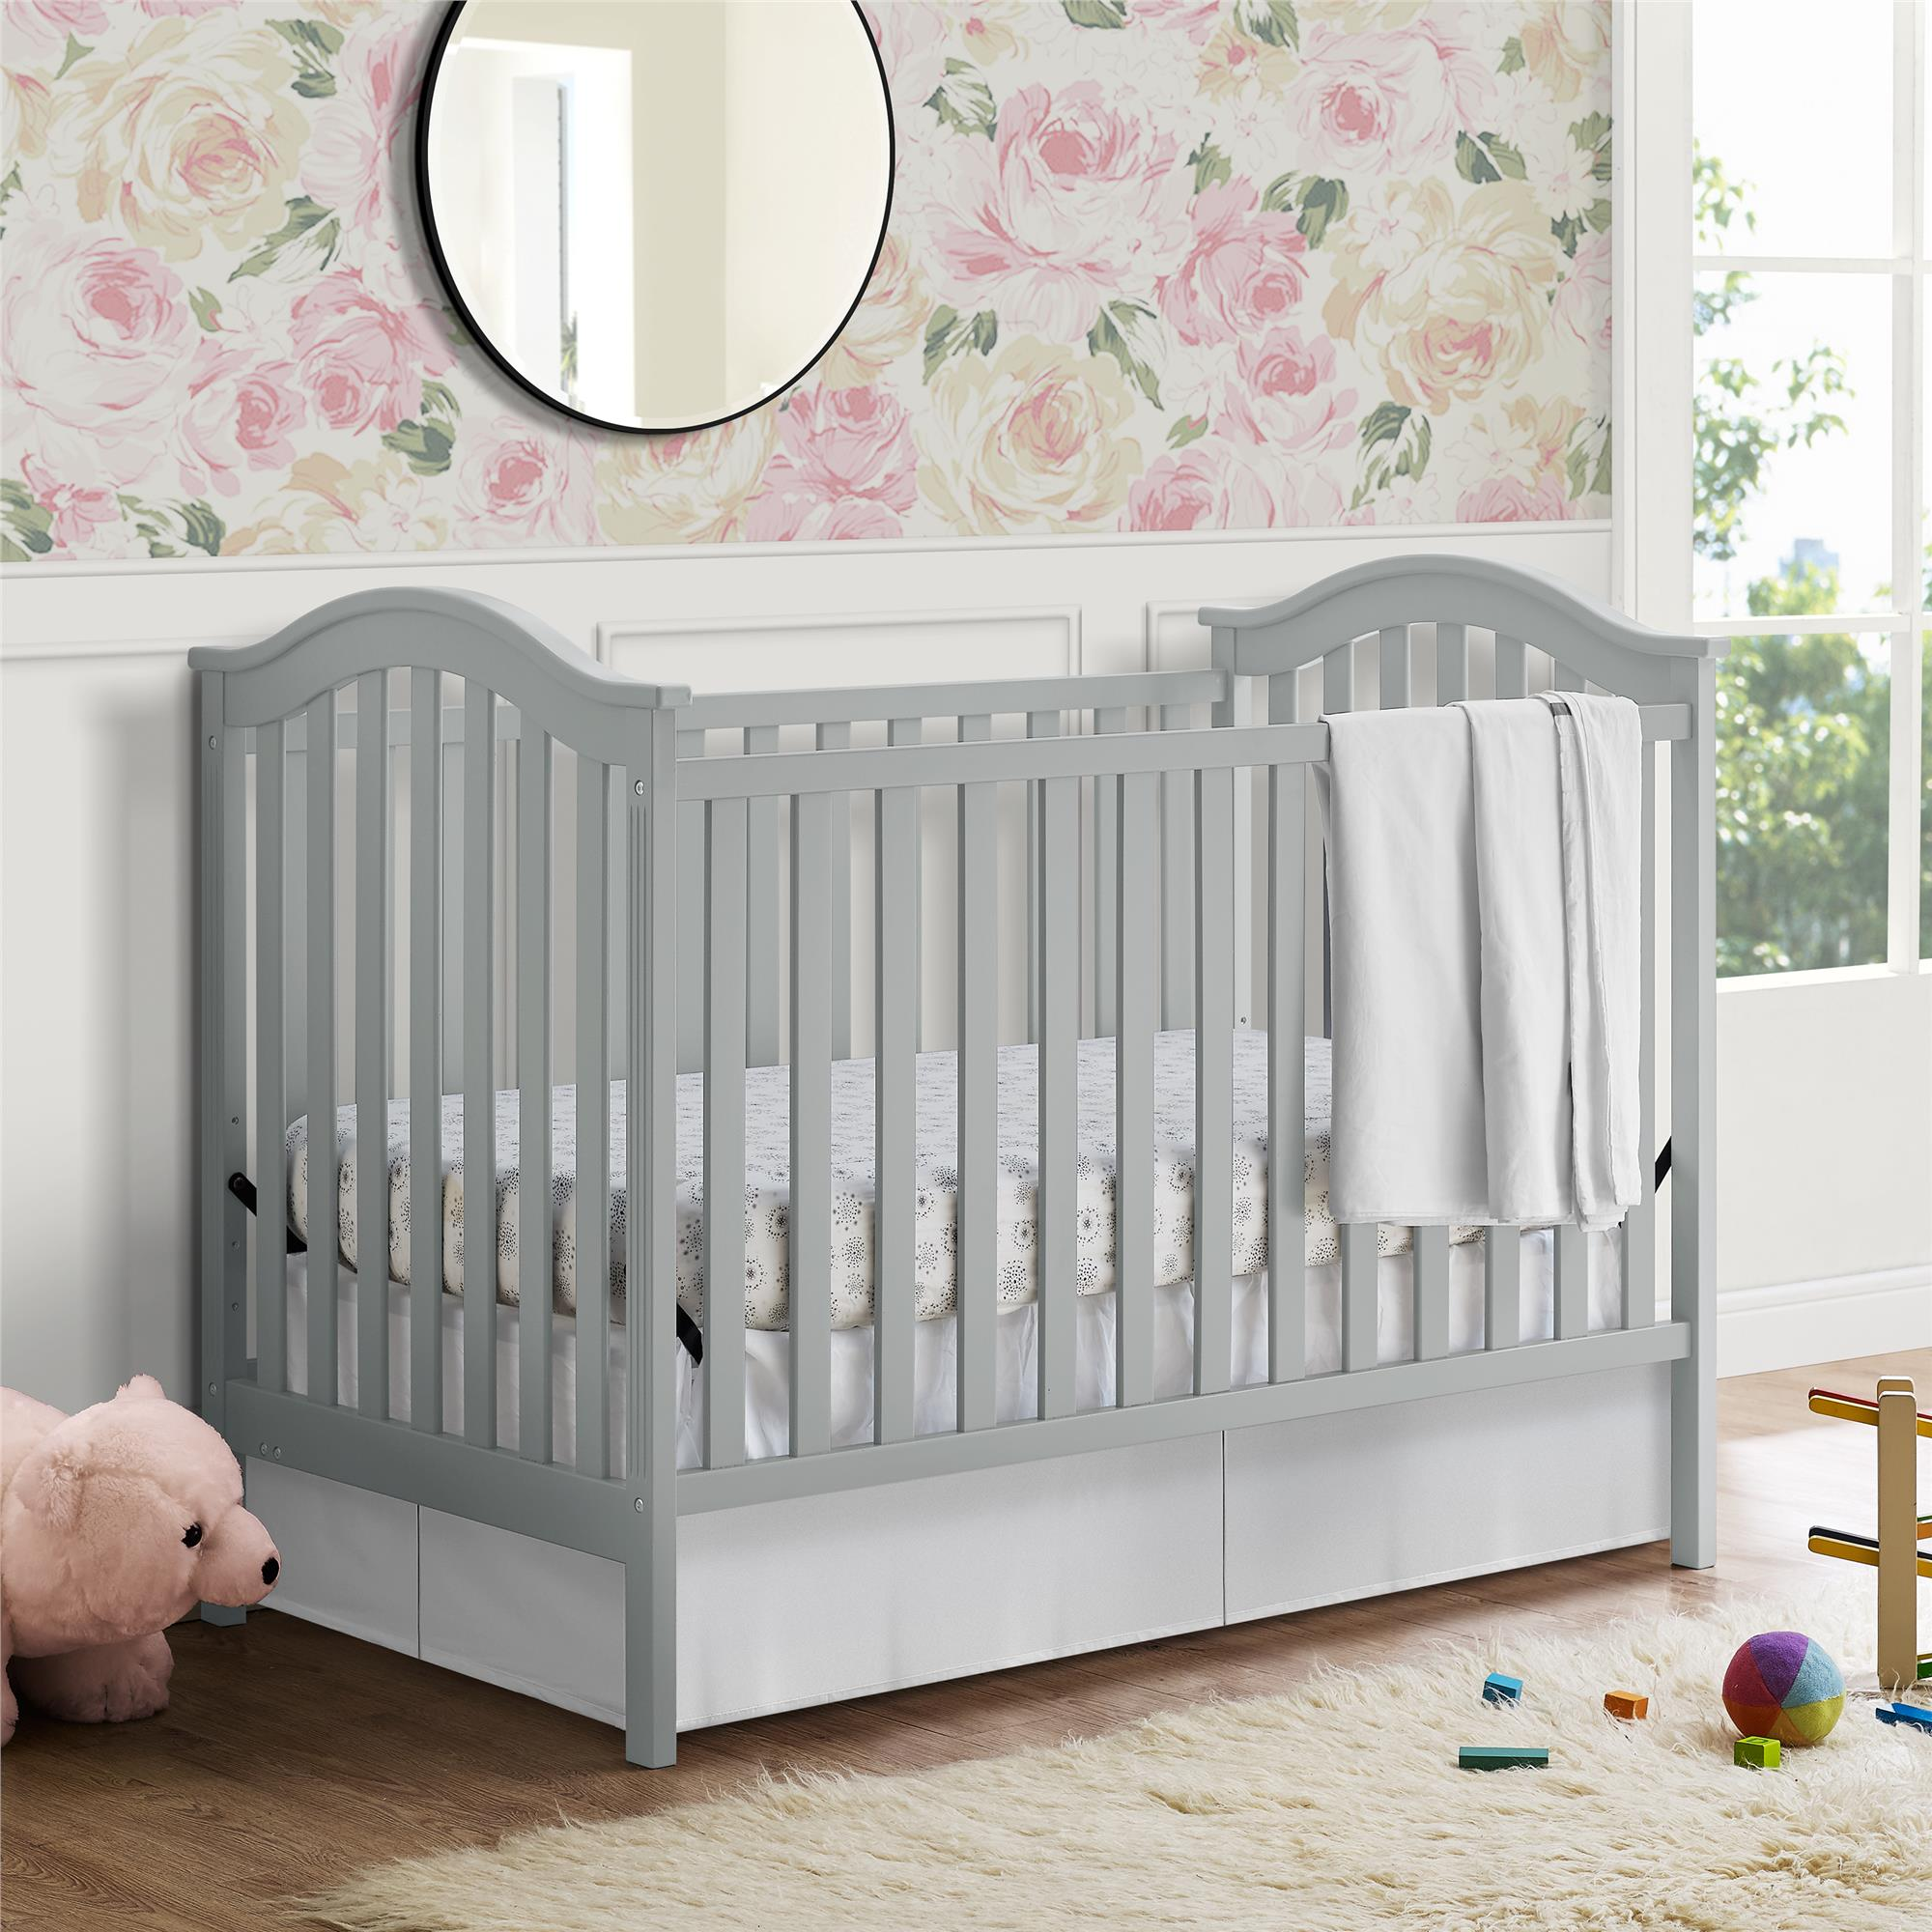 Baby Relax Adelyn 2 In 1 Convertible Crib, White   Walmart.com